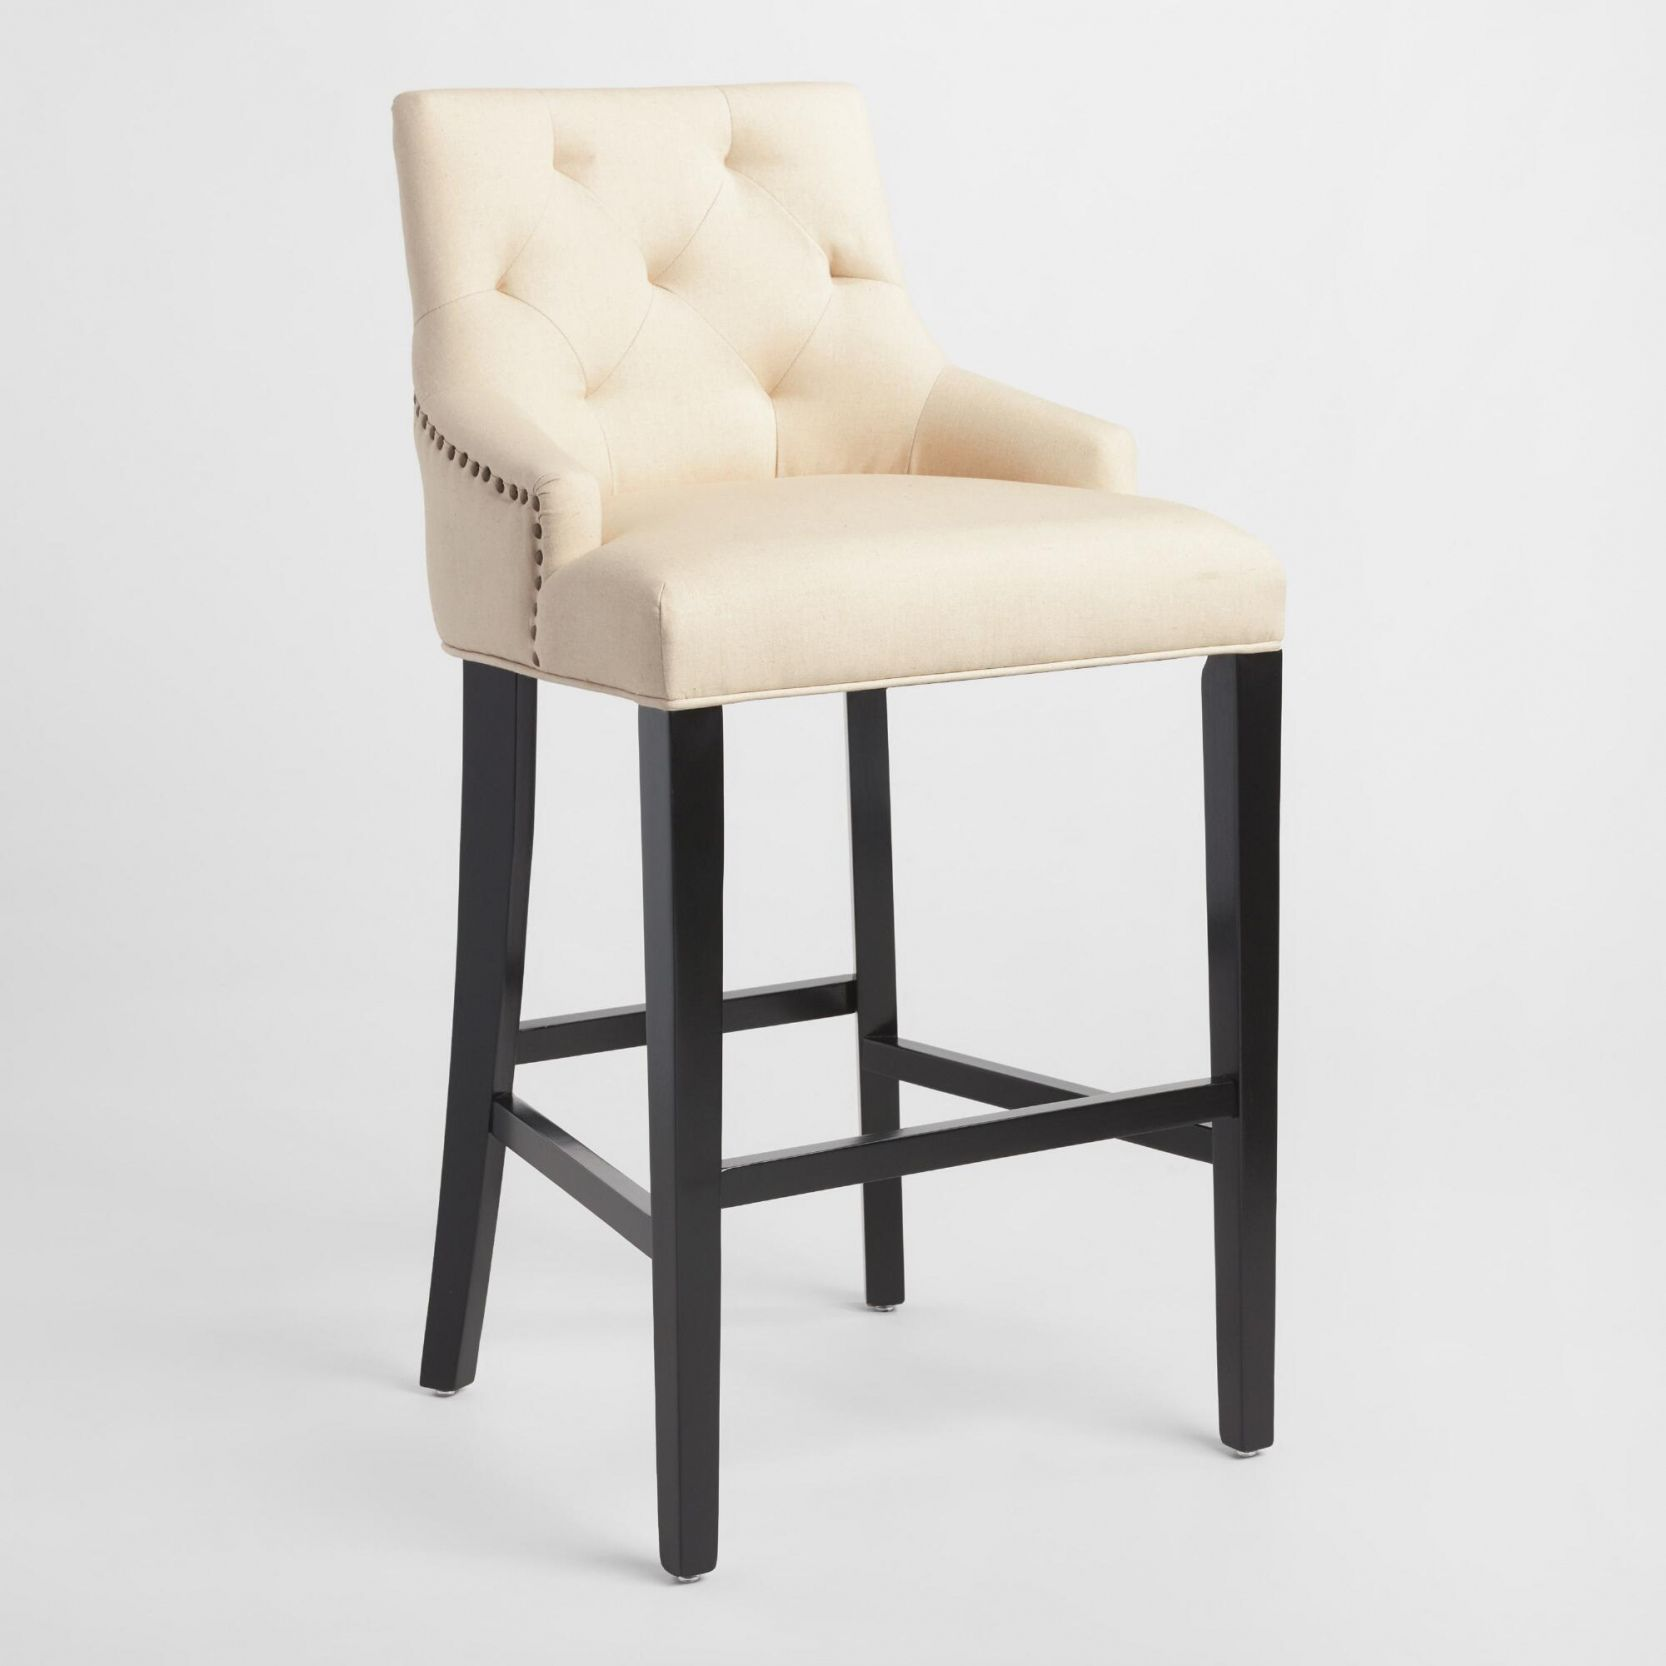 70+ Cost Plus Bar Stools - Modern Style Furniture Check more at http:/